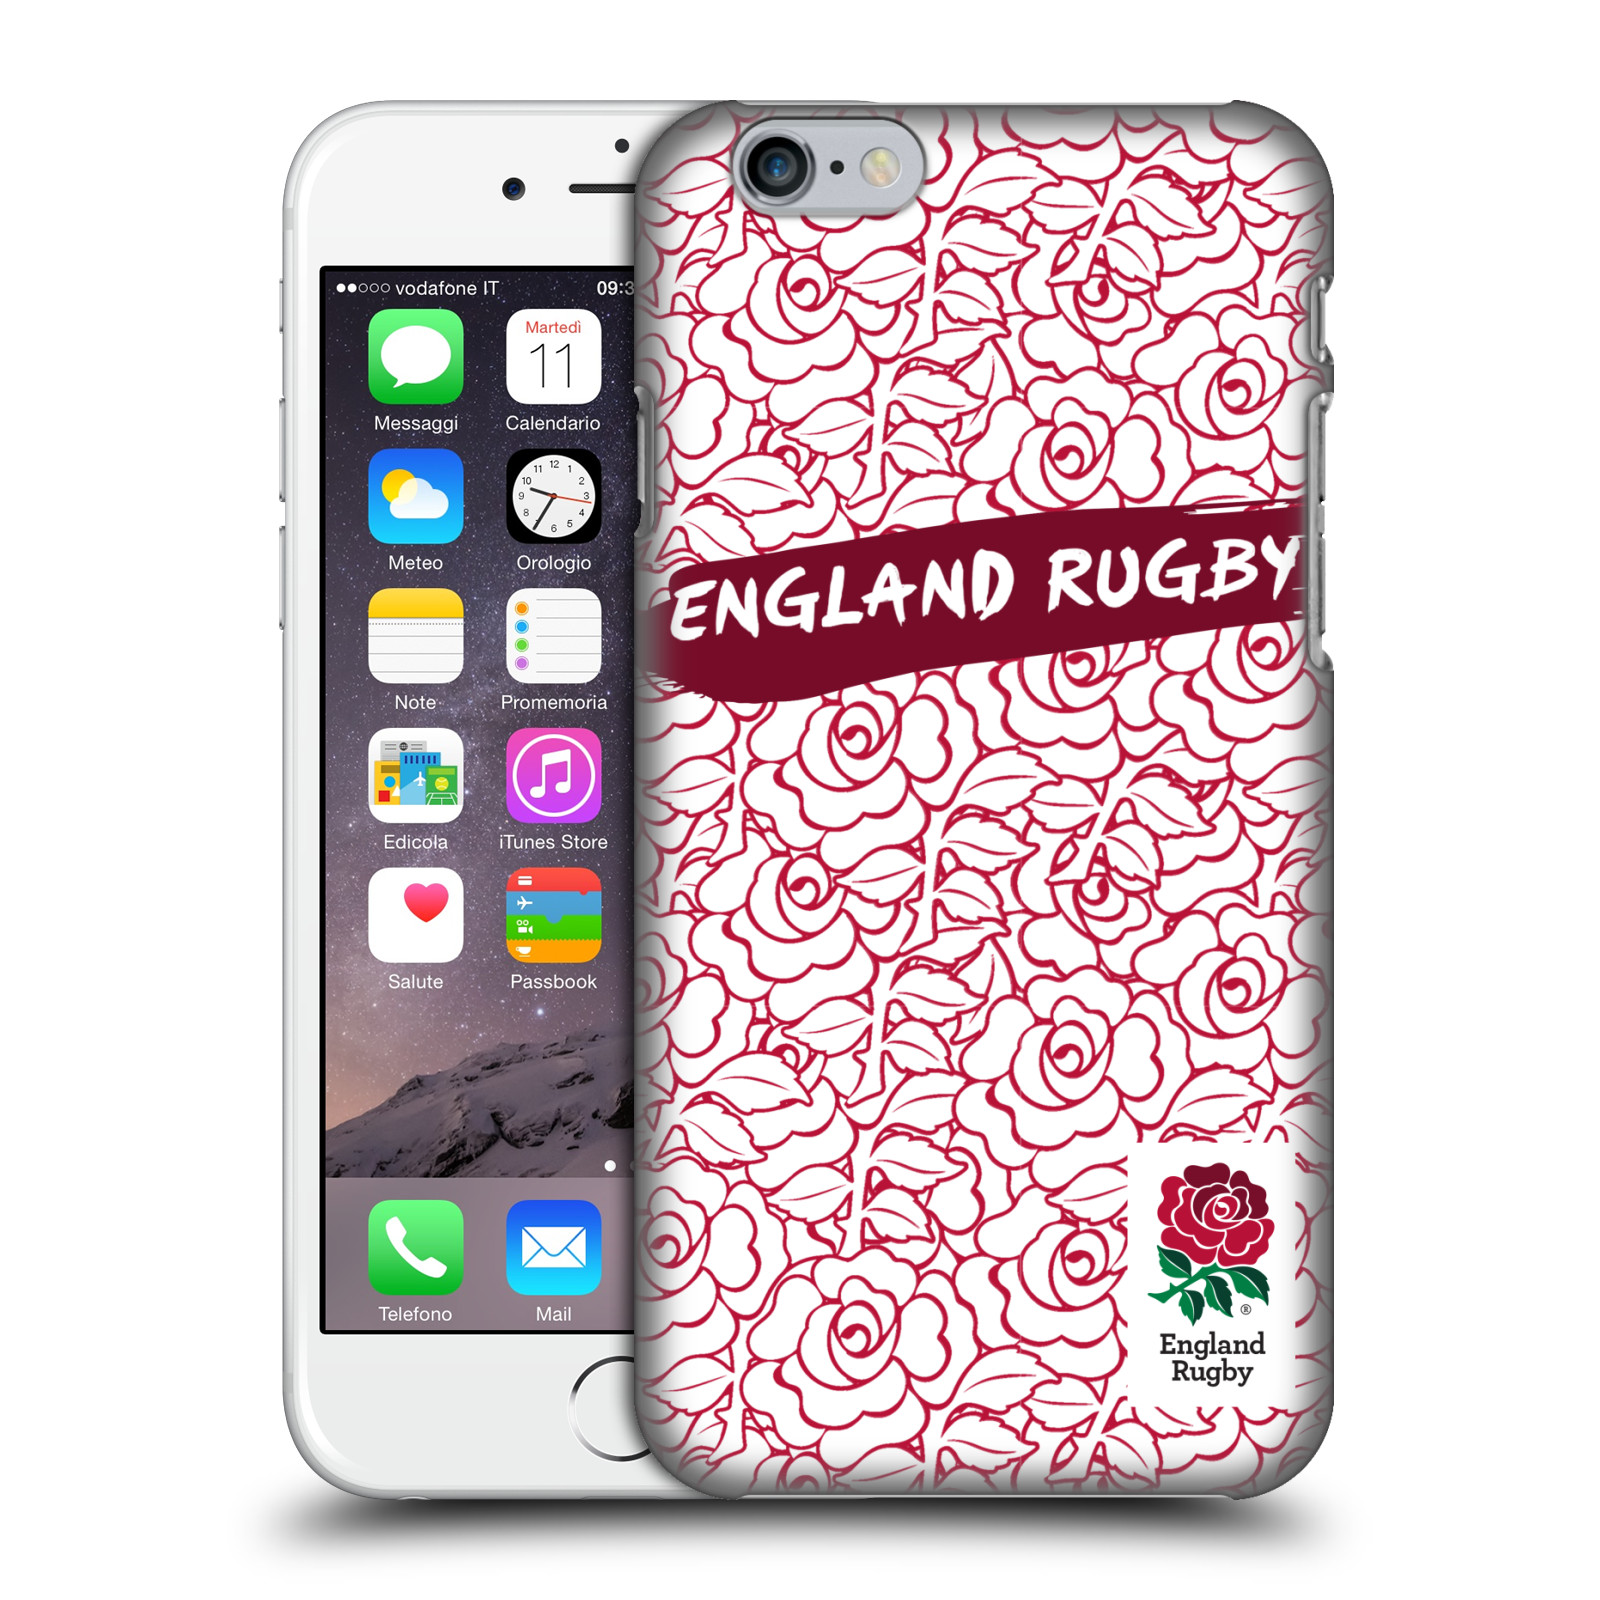 England Rugby Union 2016/17 Patterns-Red Outline Rose